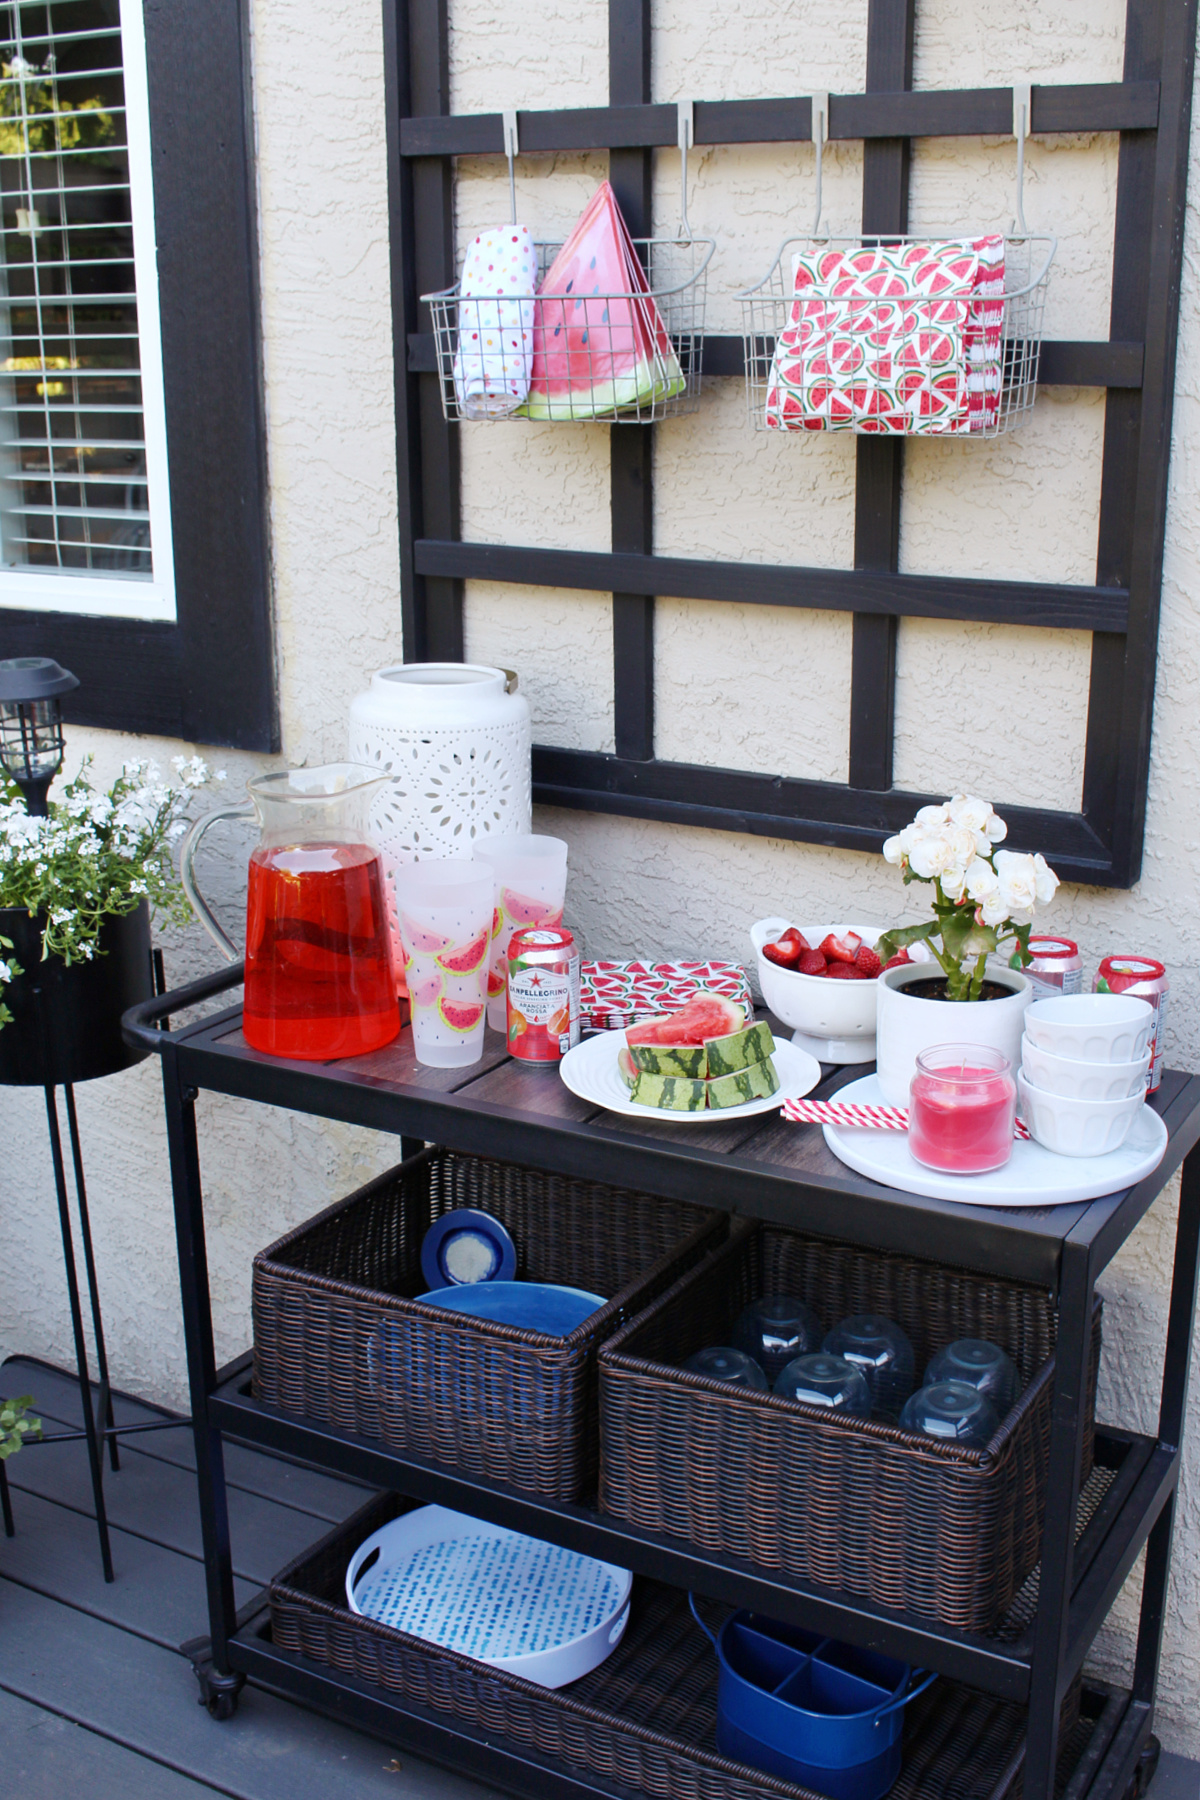 Beverage cart on a summer patio.